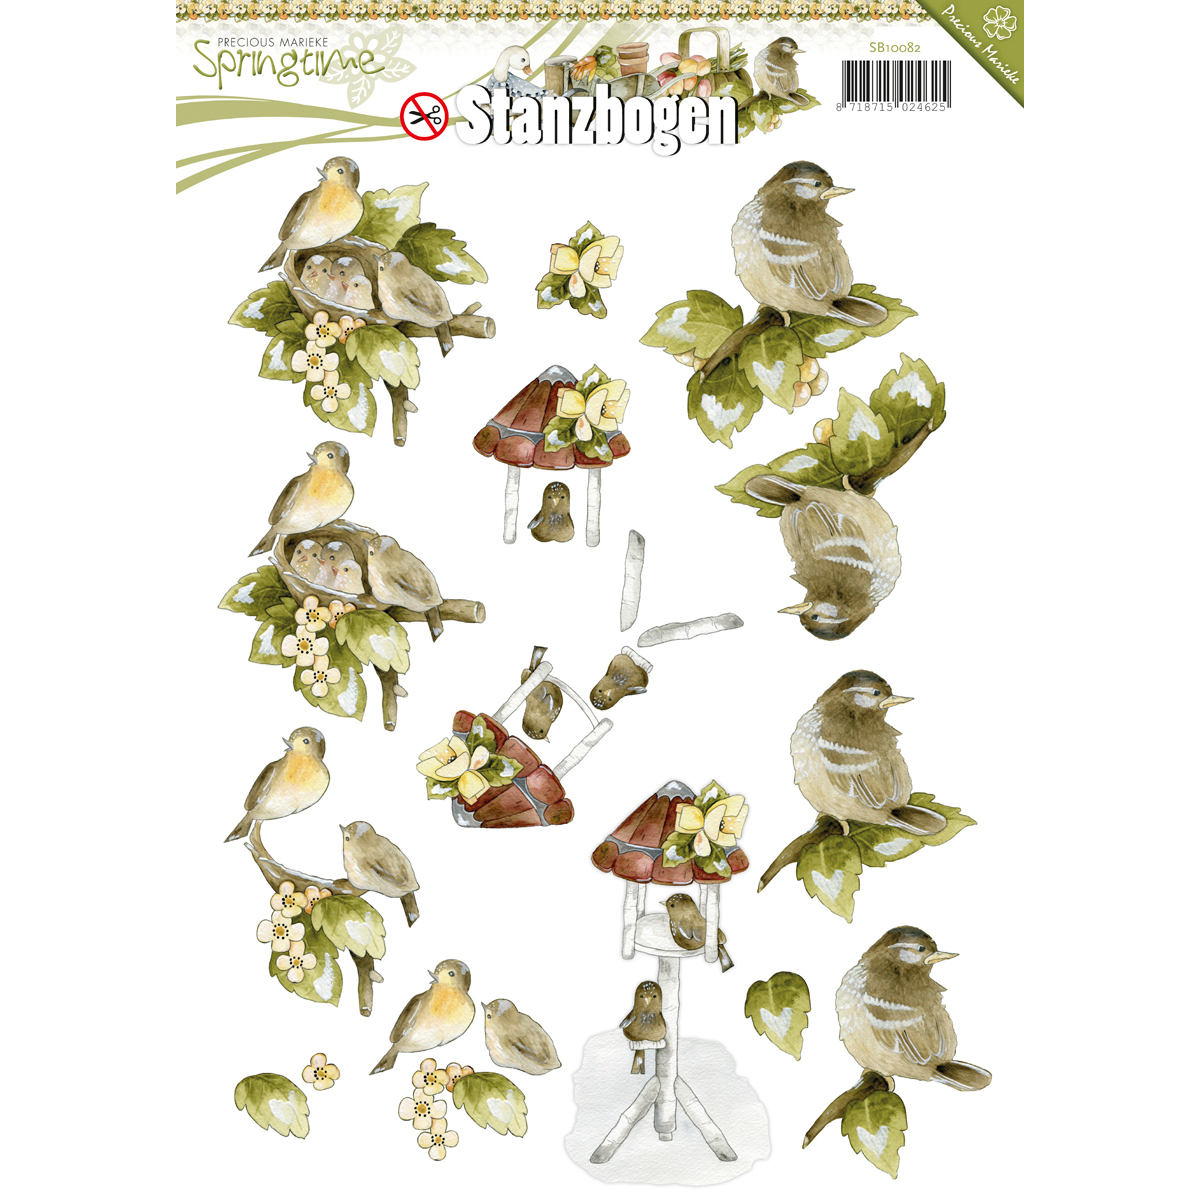 Find It Precious Marieke Springtime Punchout Sheet-Bird Nest, Birdhouse & Bird Branch